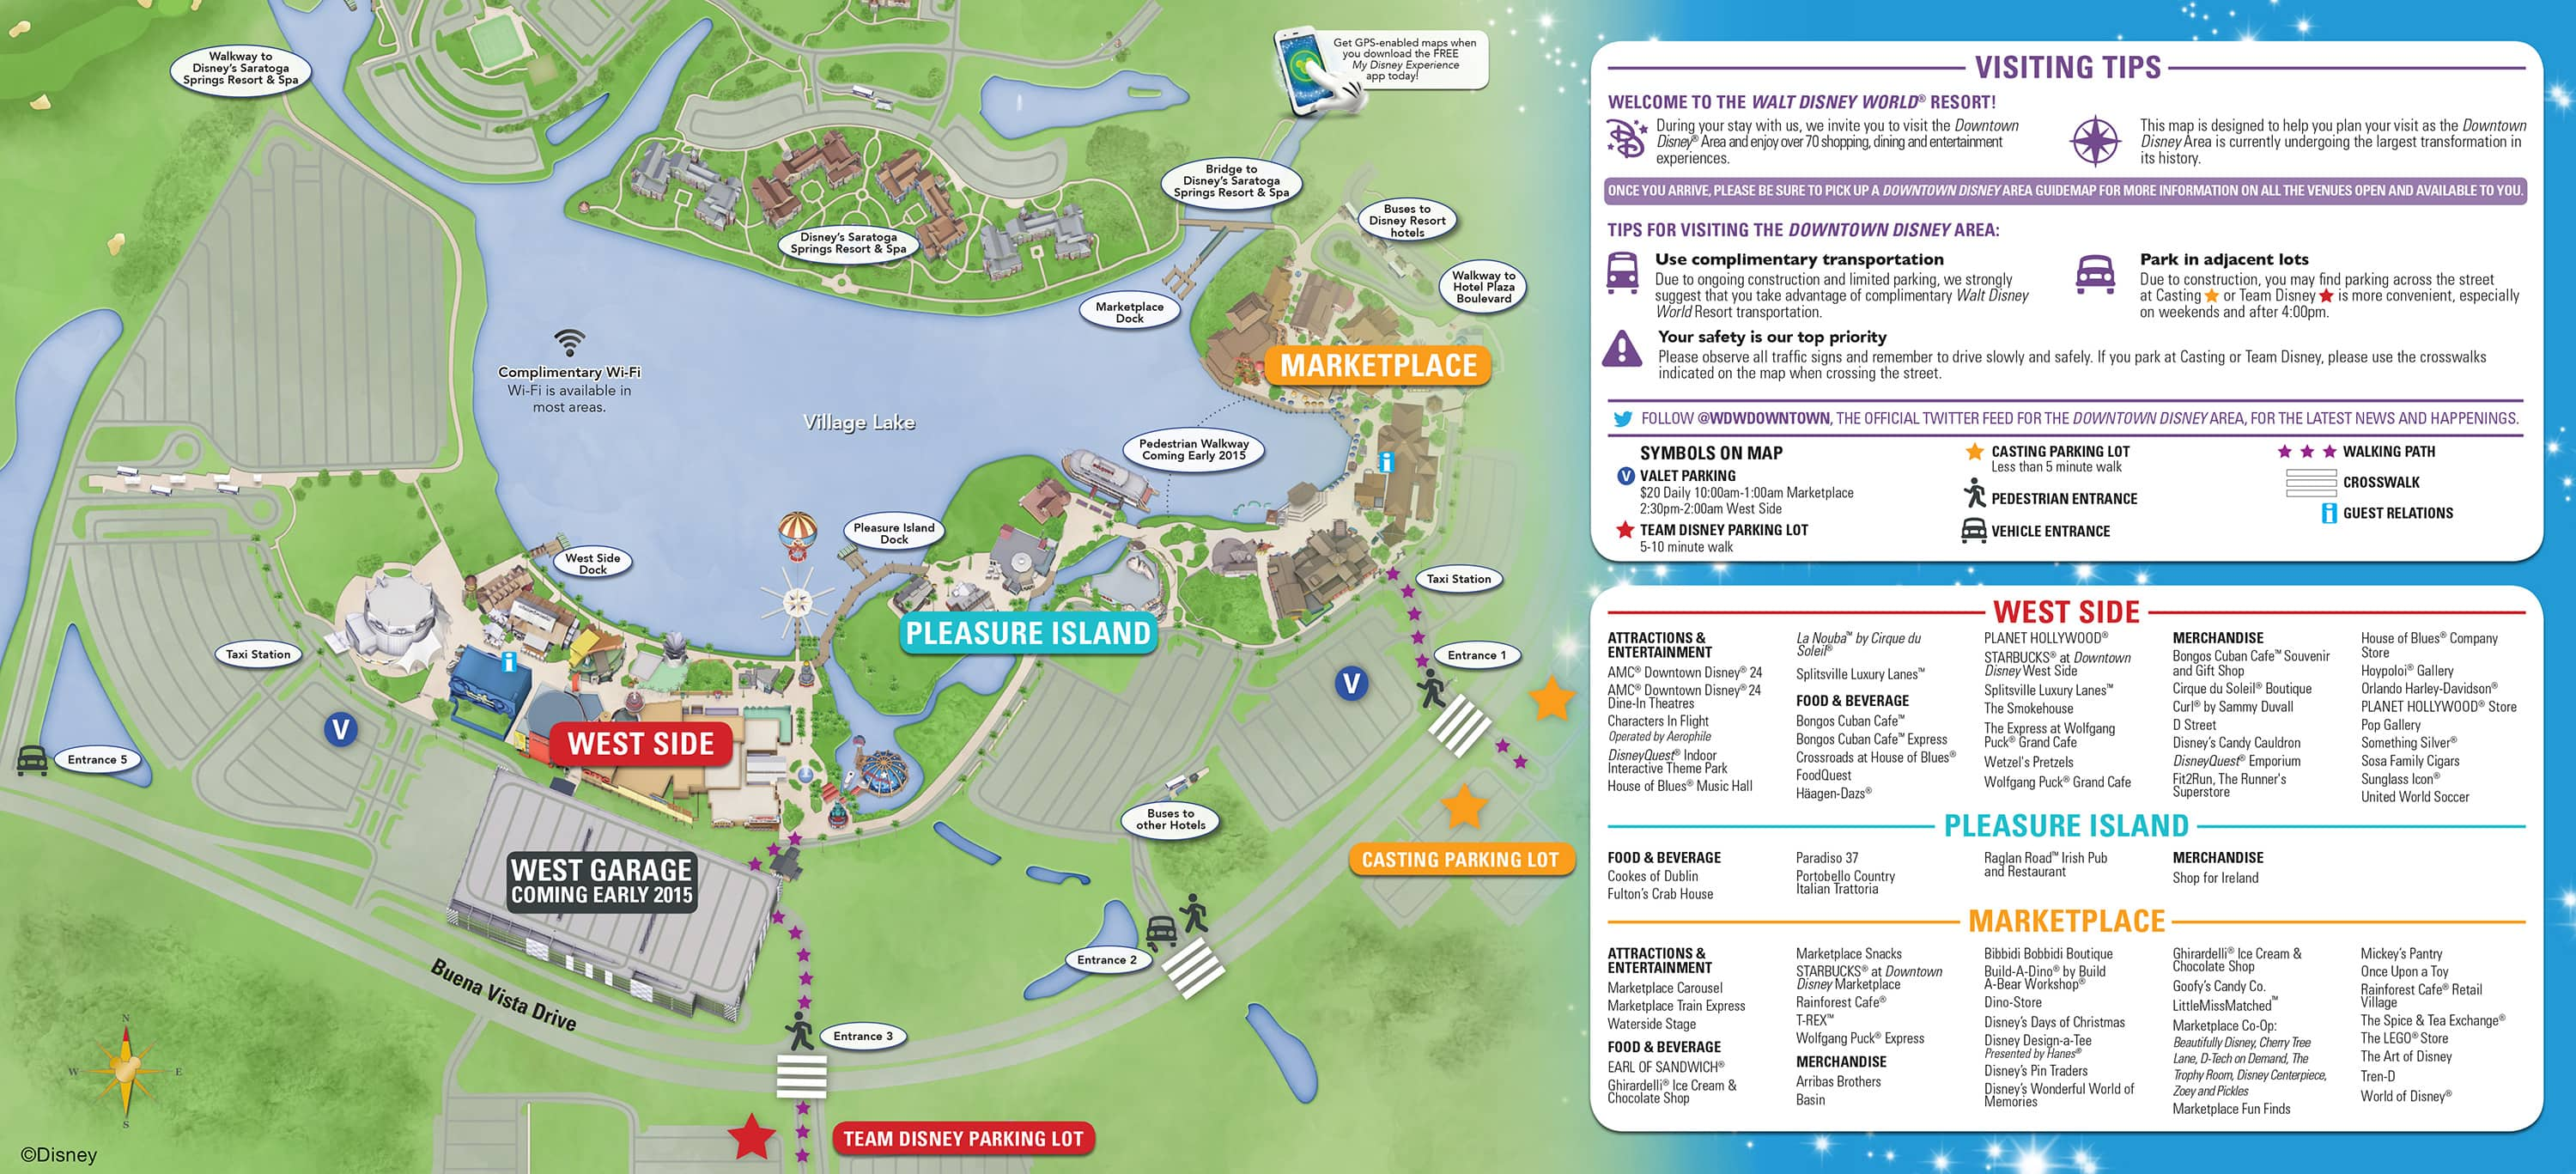 map of downtown disney orlando fl Downtown Disney Parking Information Tips Disney Parks Blog map of downtown disney orlando fl